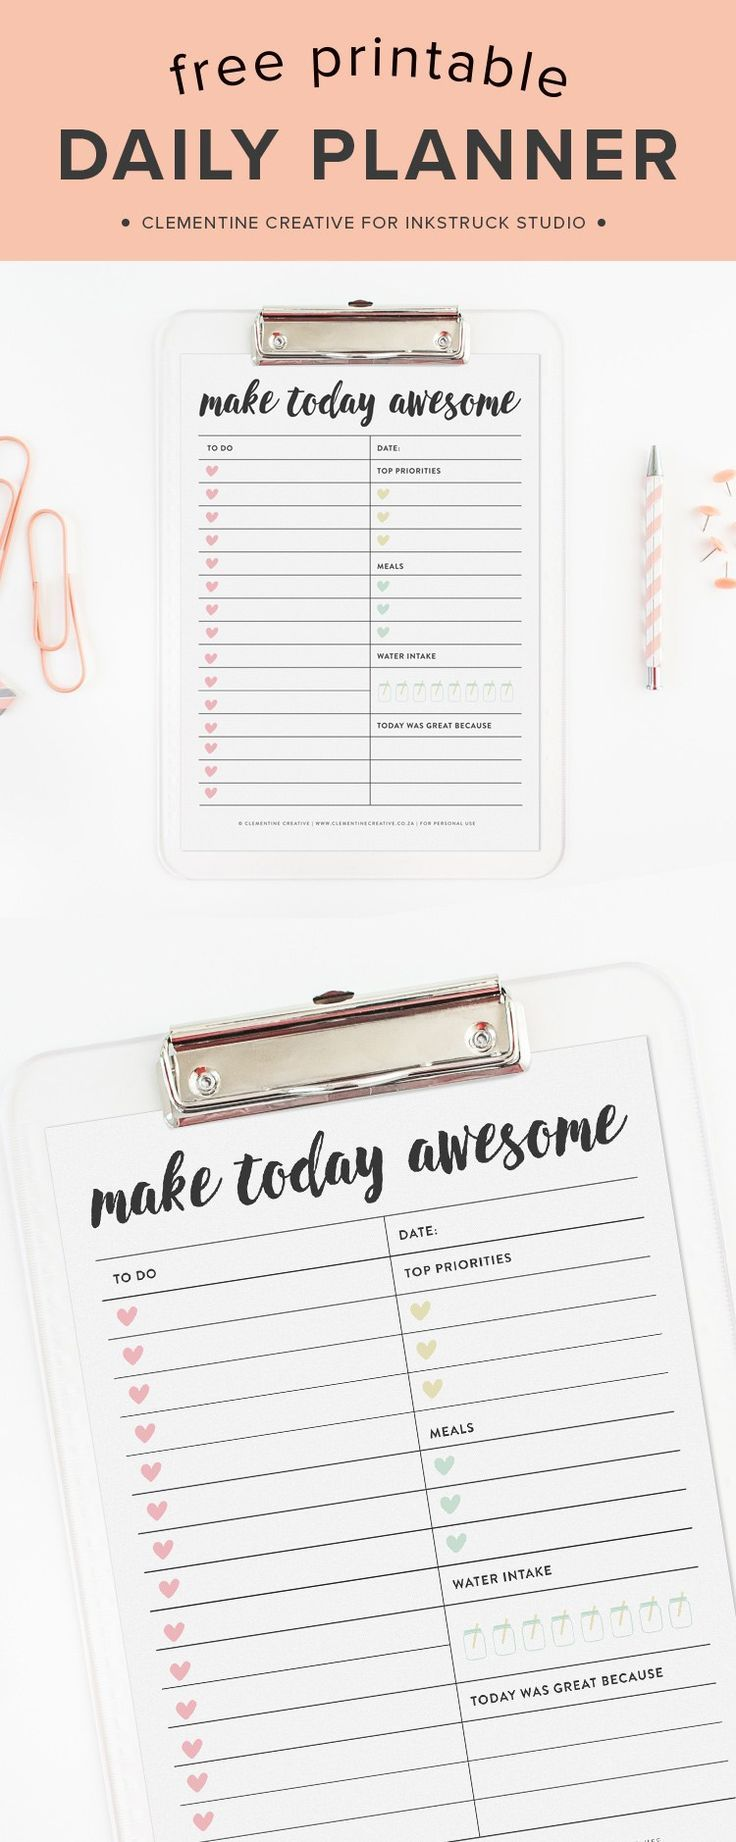 Microsoft Daily Planner 59 Best List Images On Pinterest  Planners Free Printables And .